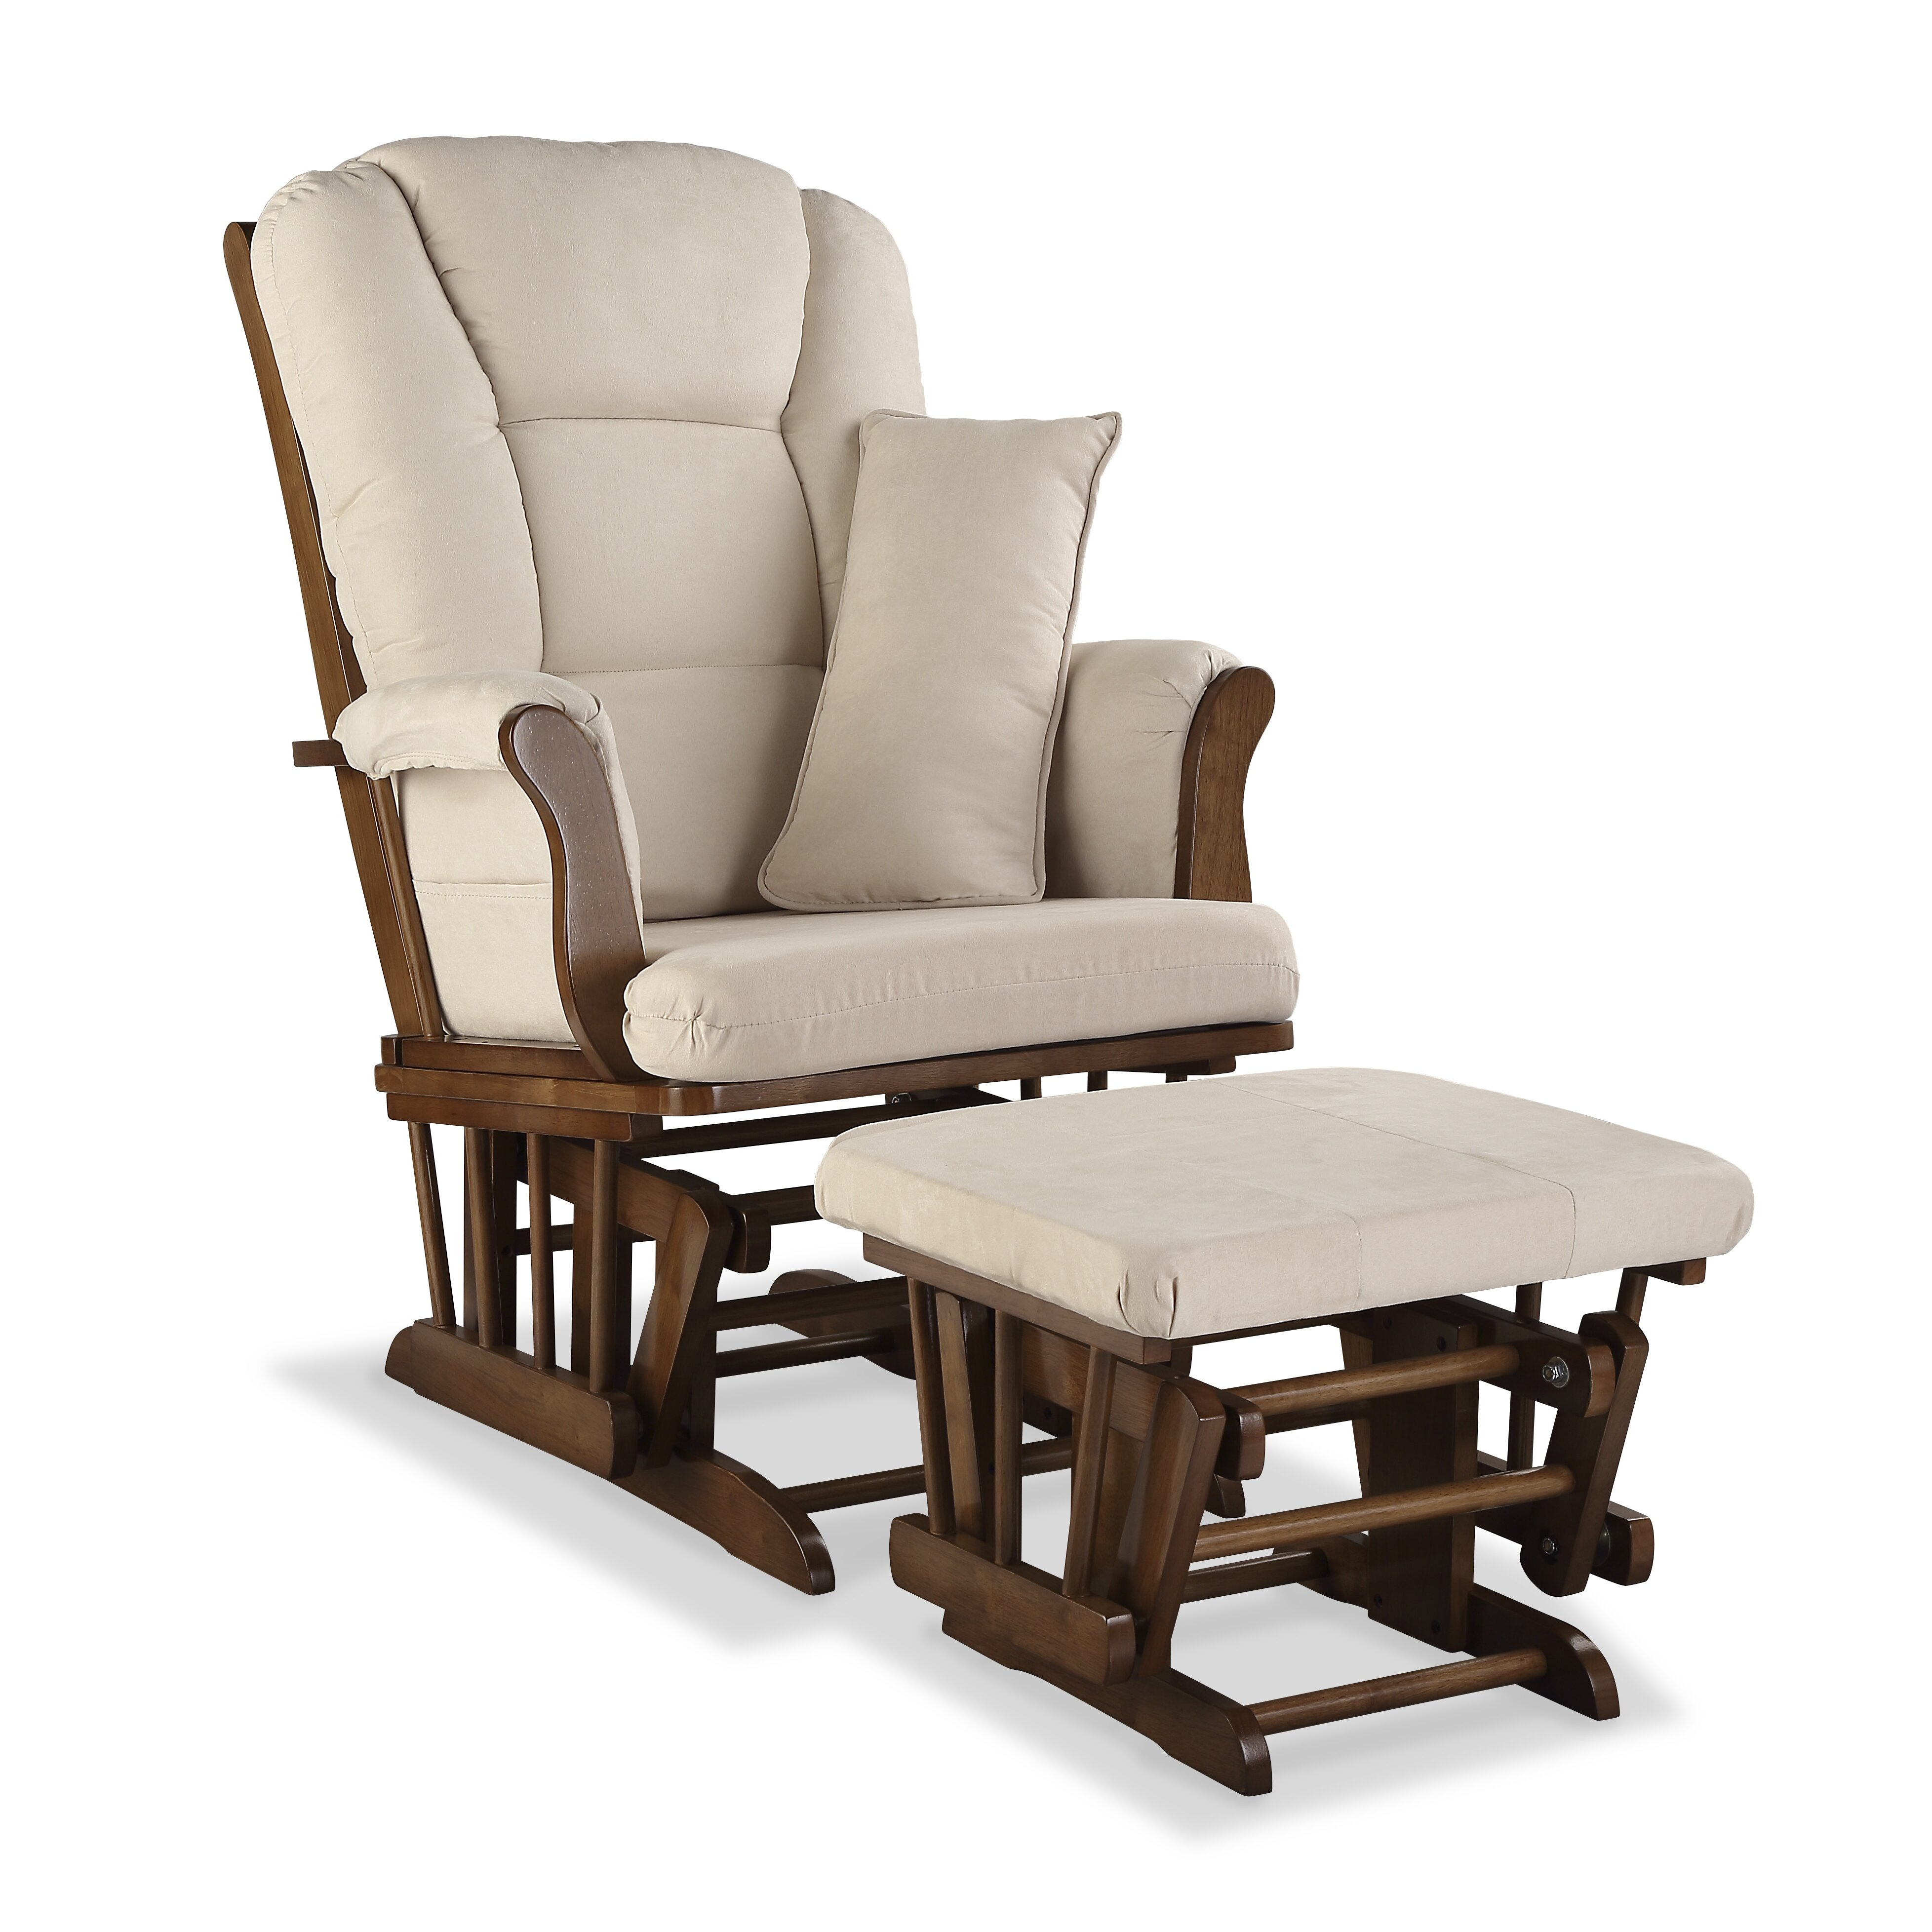 Storkcraft Tuscany Glider And Ottoman Reviews